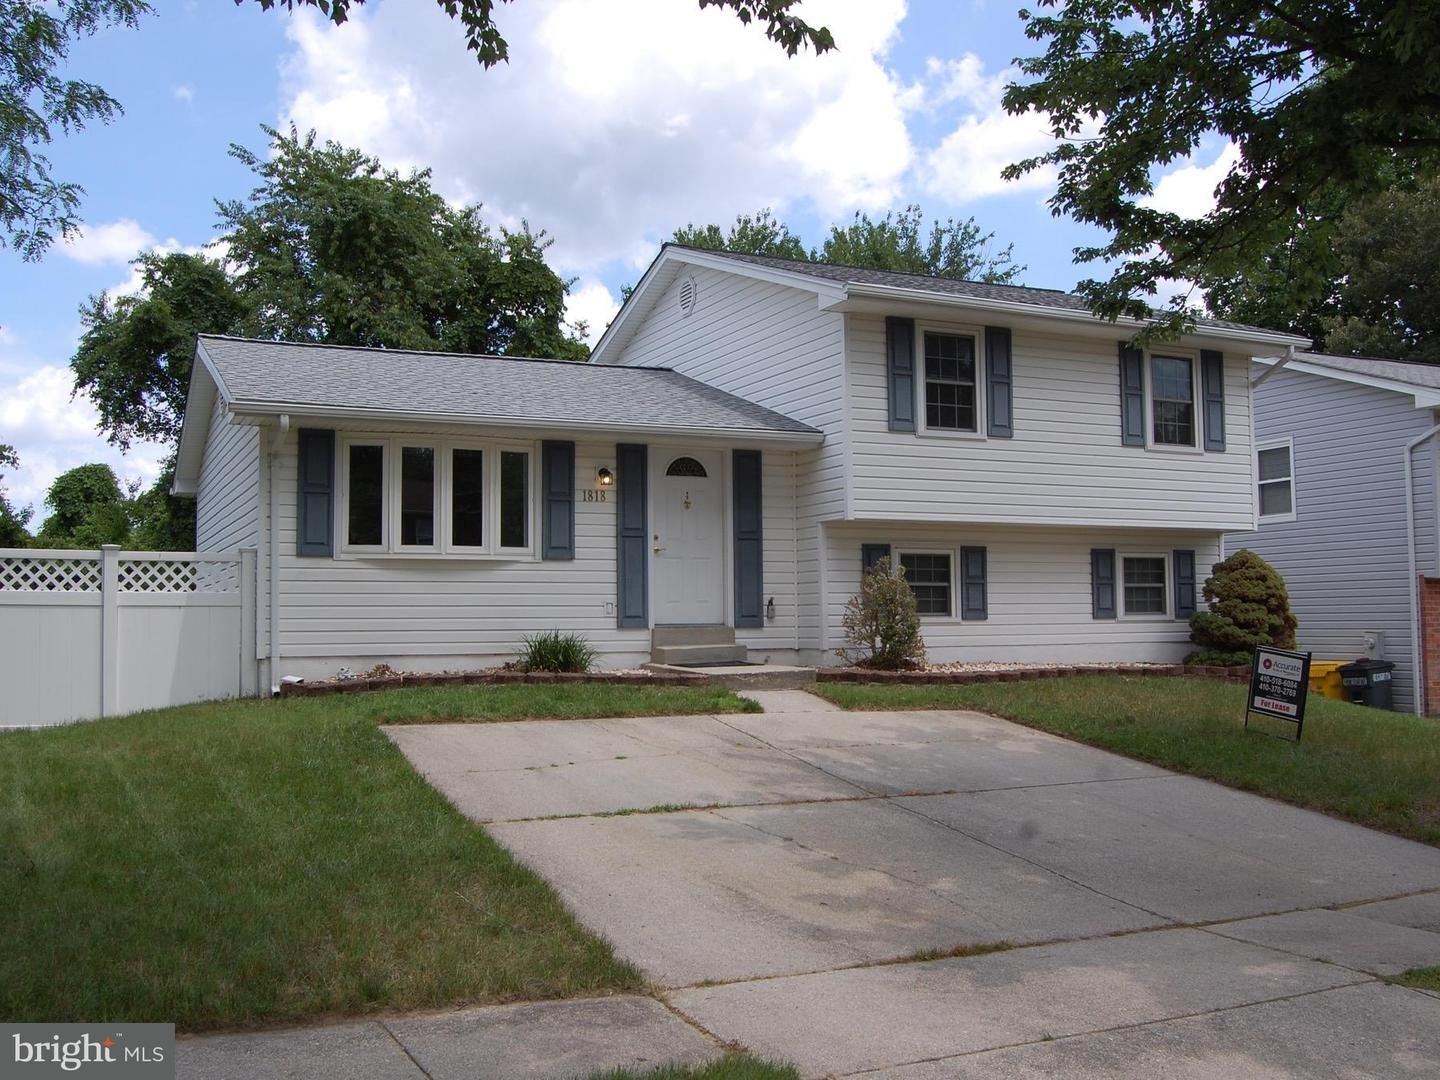 Other Residential for Rent at 1818 Montreal Rd Severn, Maryland 21144 United States